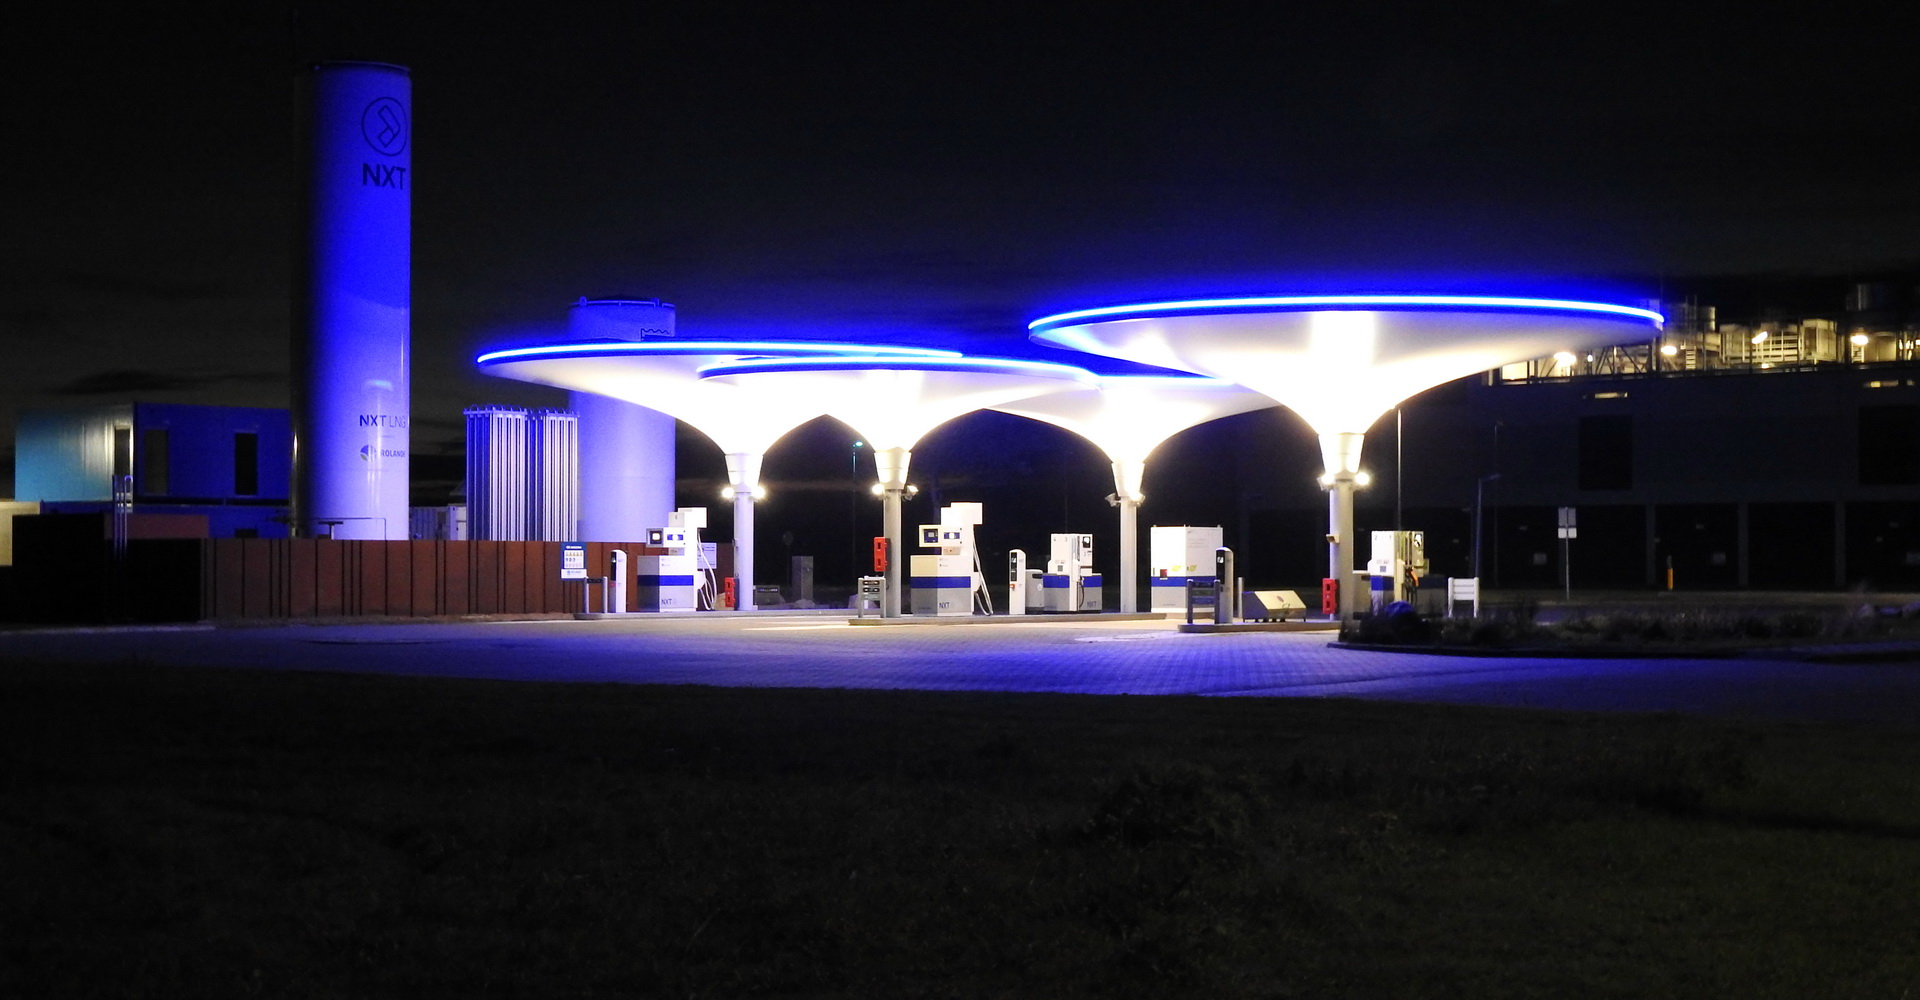 Industrial I Neon-Flex I On/Offshore I Utility I Facade I Ultra Violet LED